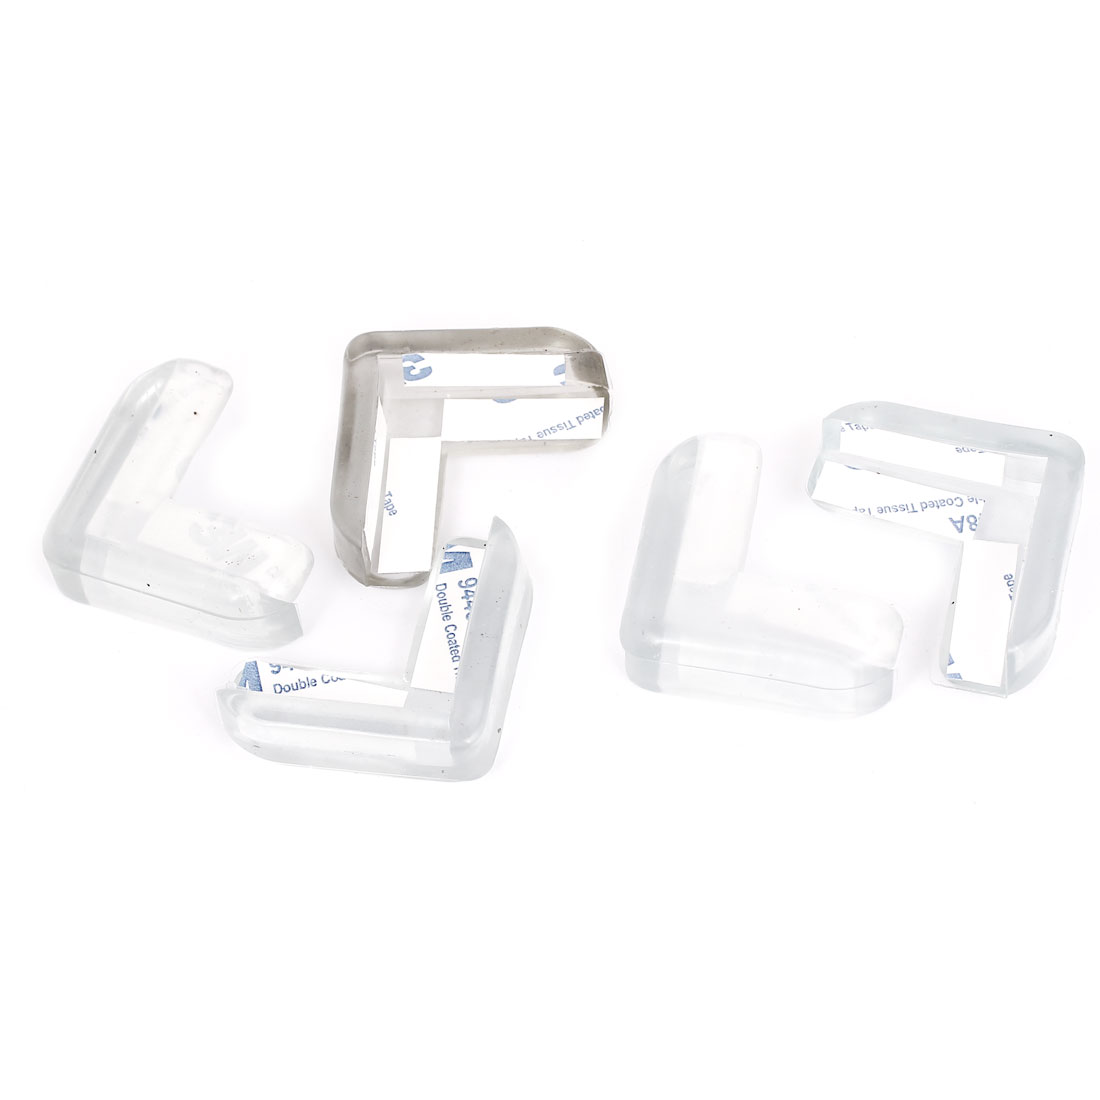 Table Desk Edge Guard Protector Rubber Corner Cushion Pad Clear Blue 5pcs